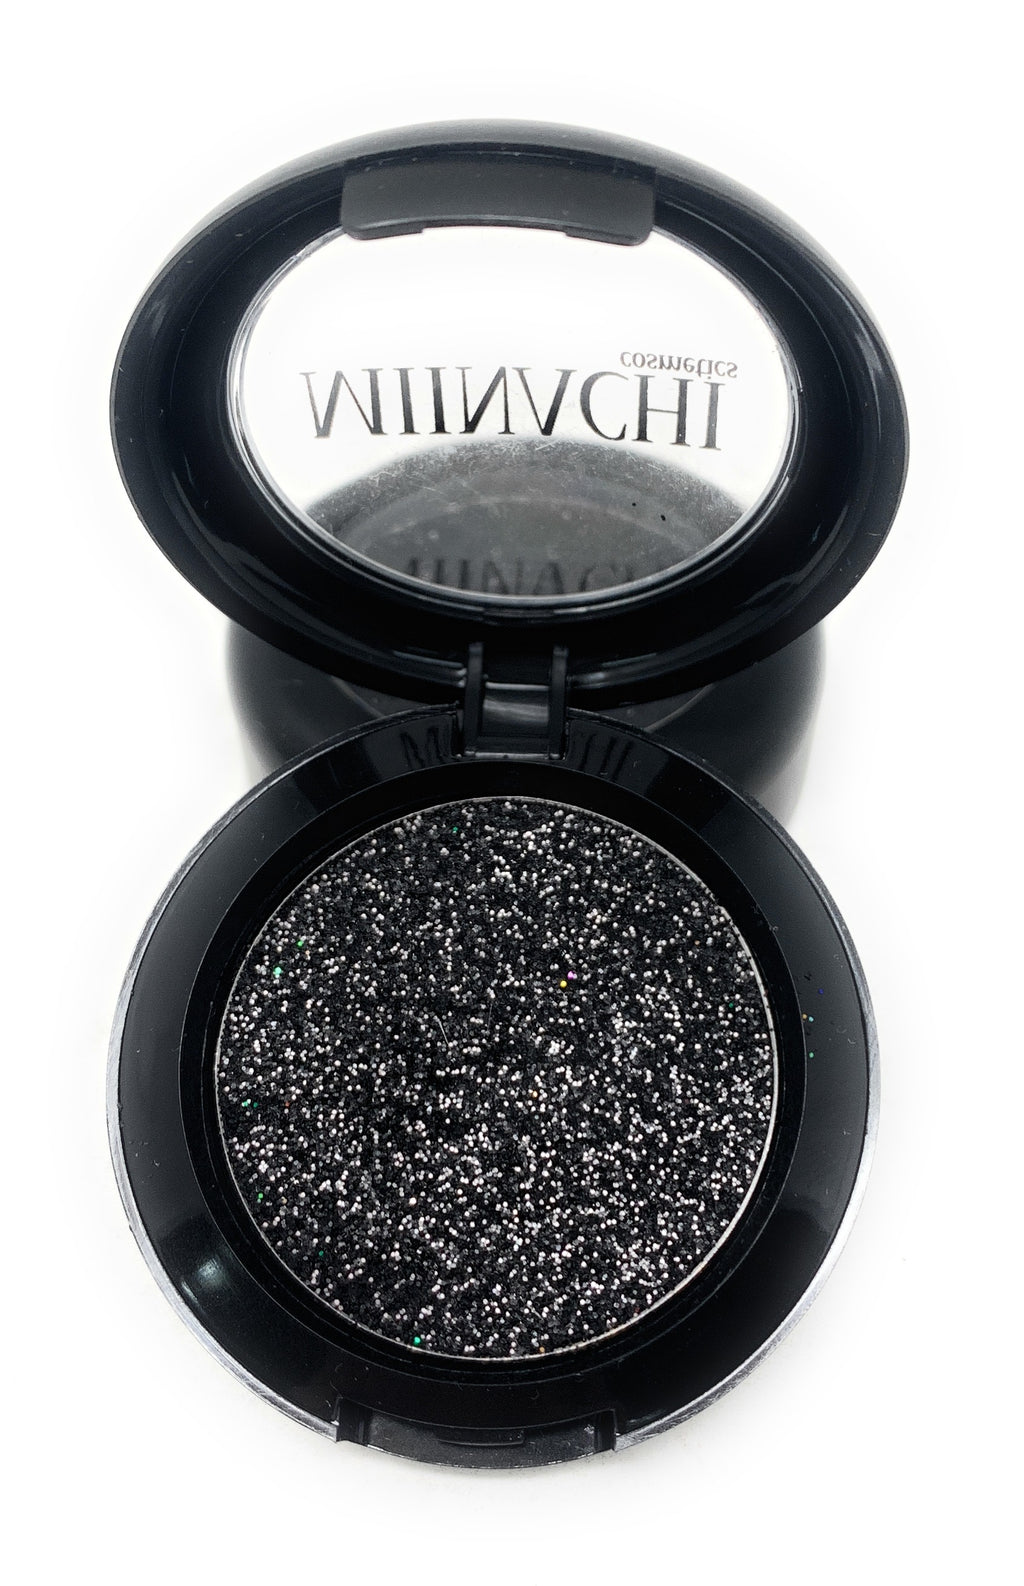 Single Pressed Glitter in the shade Dark Knight JUMBO Size, No Glue Needed, In Compact, Pigmented, No Fall Out, Glitter, Cosmetic Grade Glitter